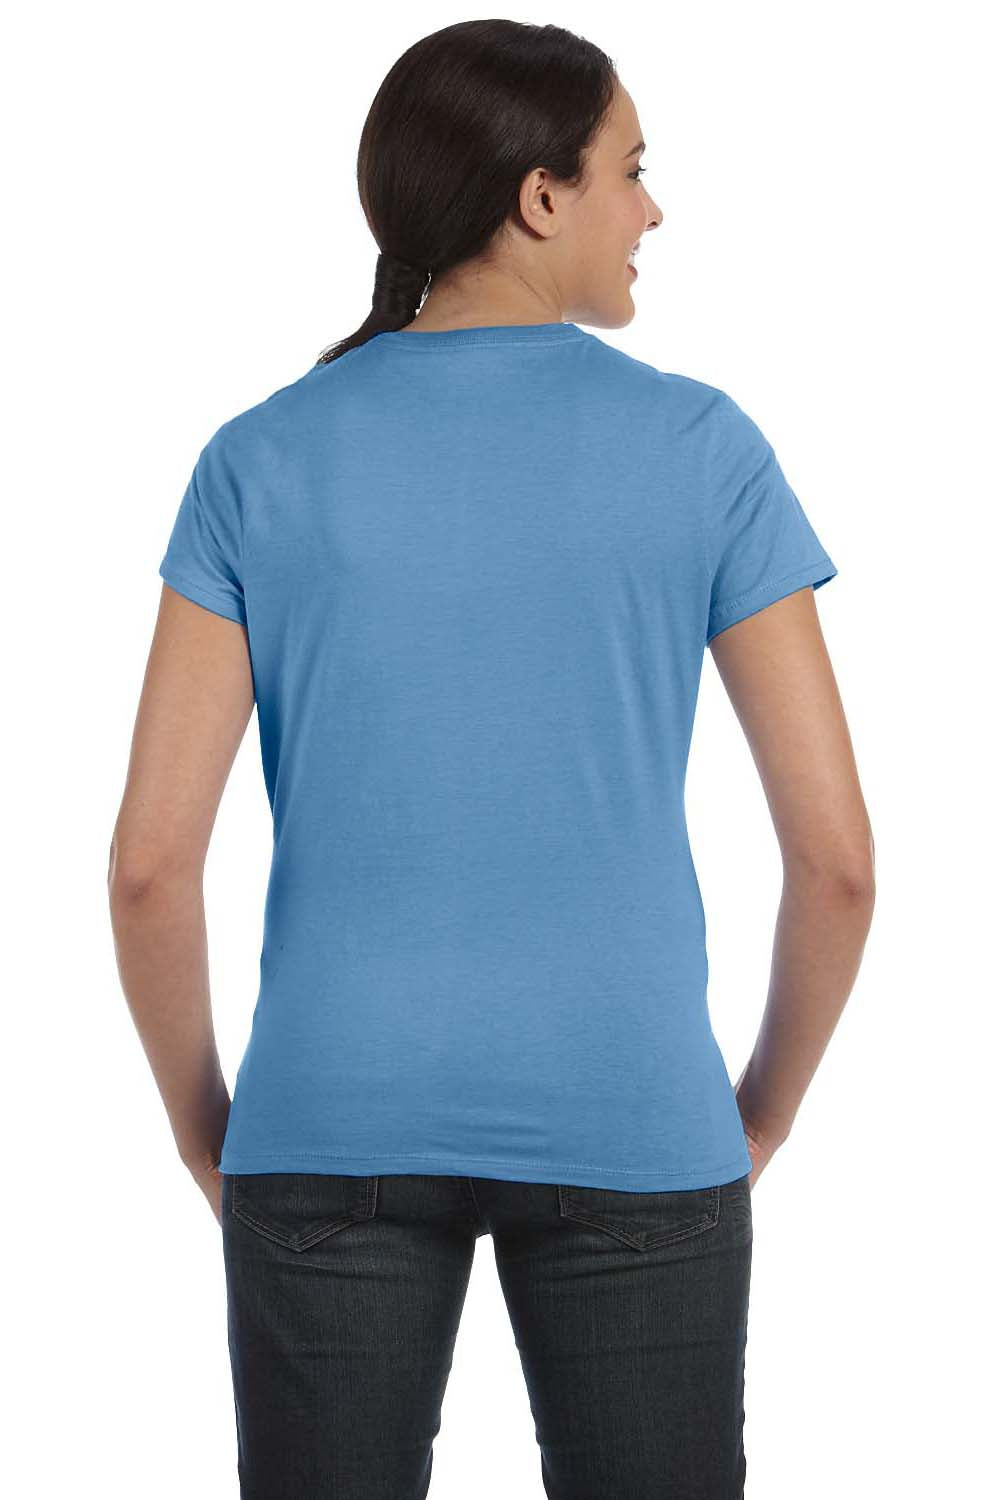 Hanes SL04 Womens Nano-T Short Sleeve Crewneck T-Shirt Carolina Blue Back